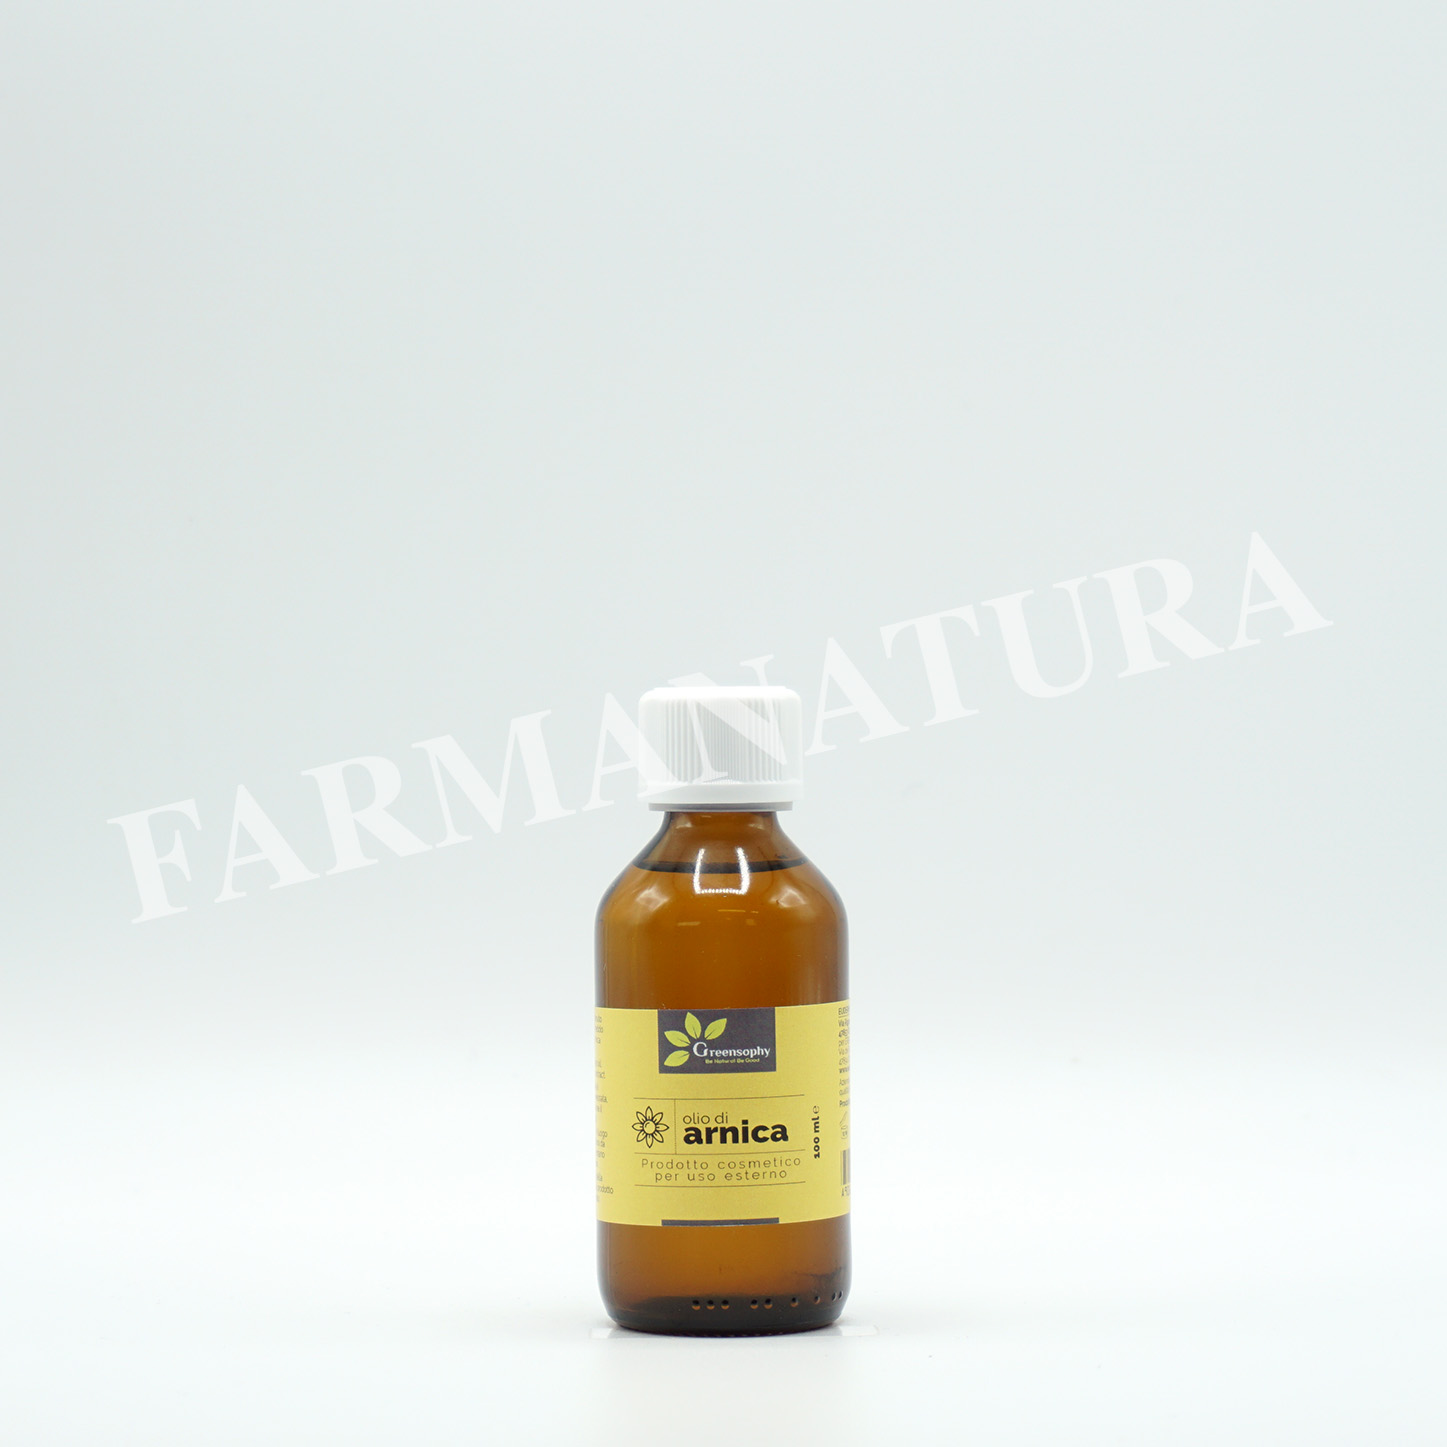 Greensophy Arnica Olio Vegetale U.E. 100Ml